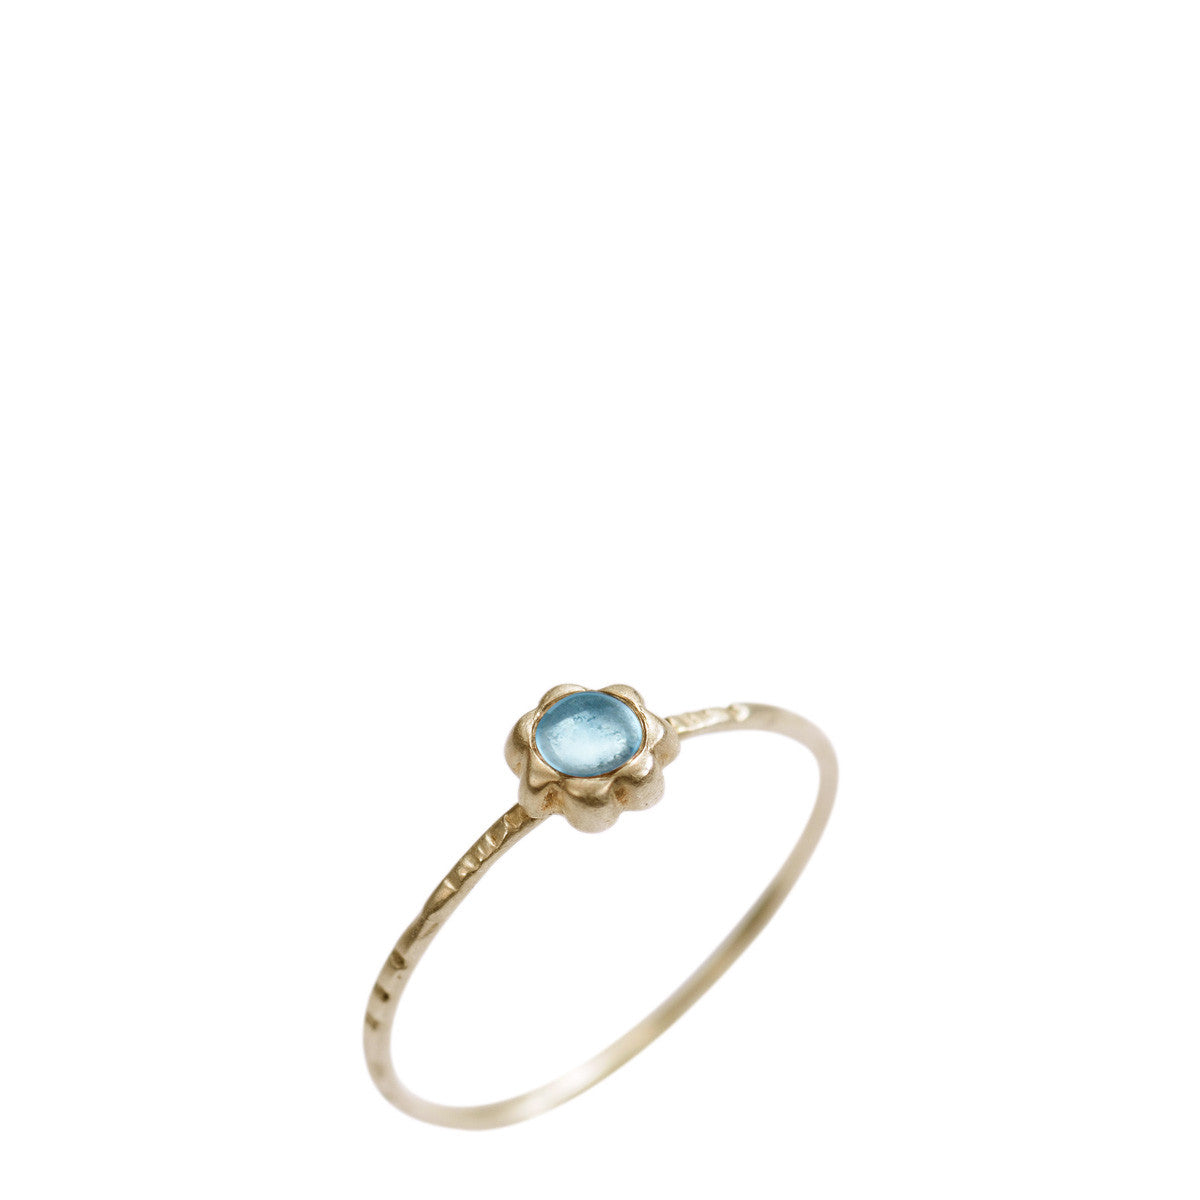 10K Gold Star Flower with Blue Topaz Ring